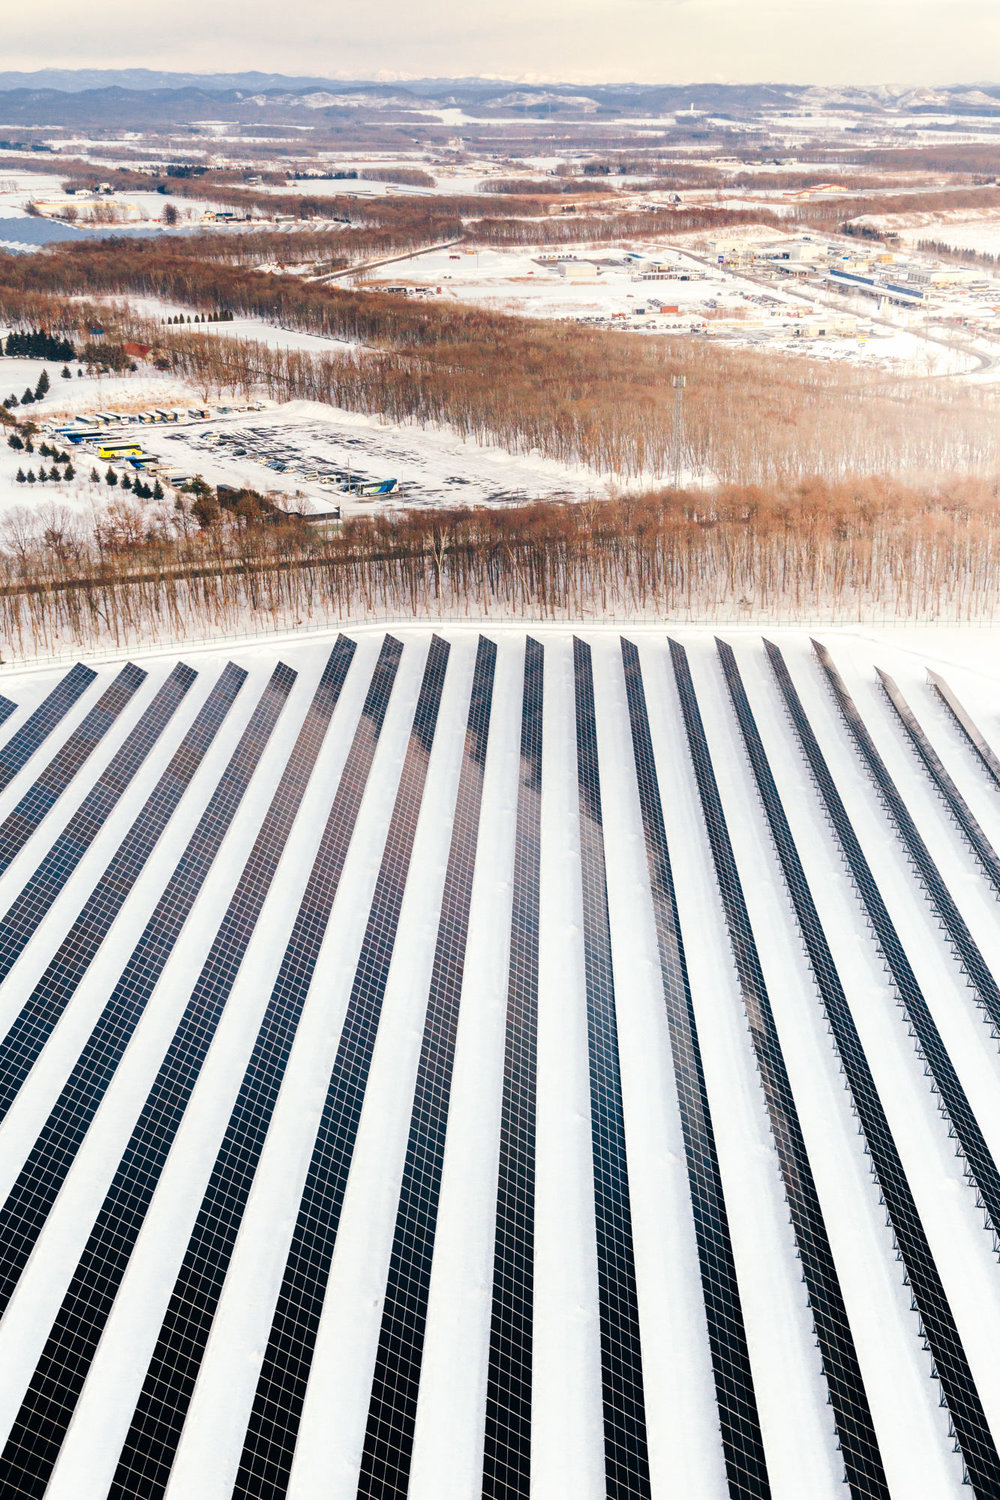 Solar Panels in Snow: Hokaiddo